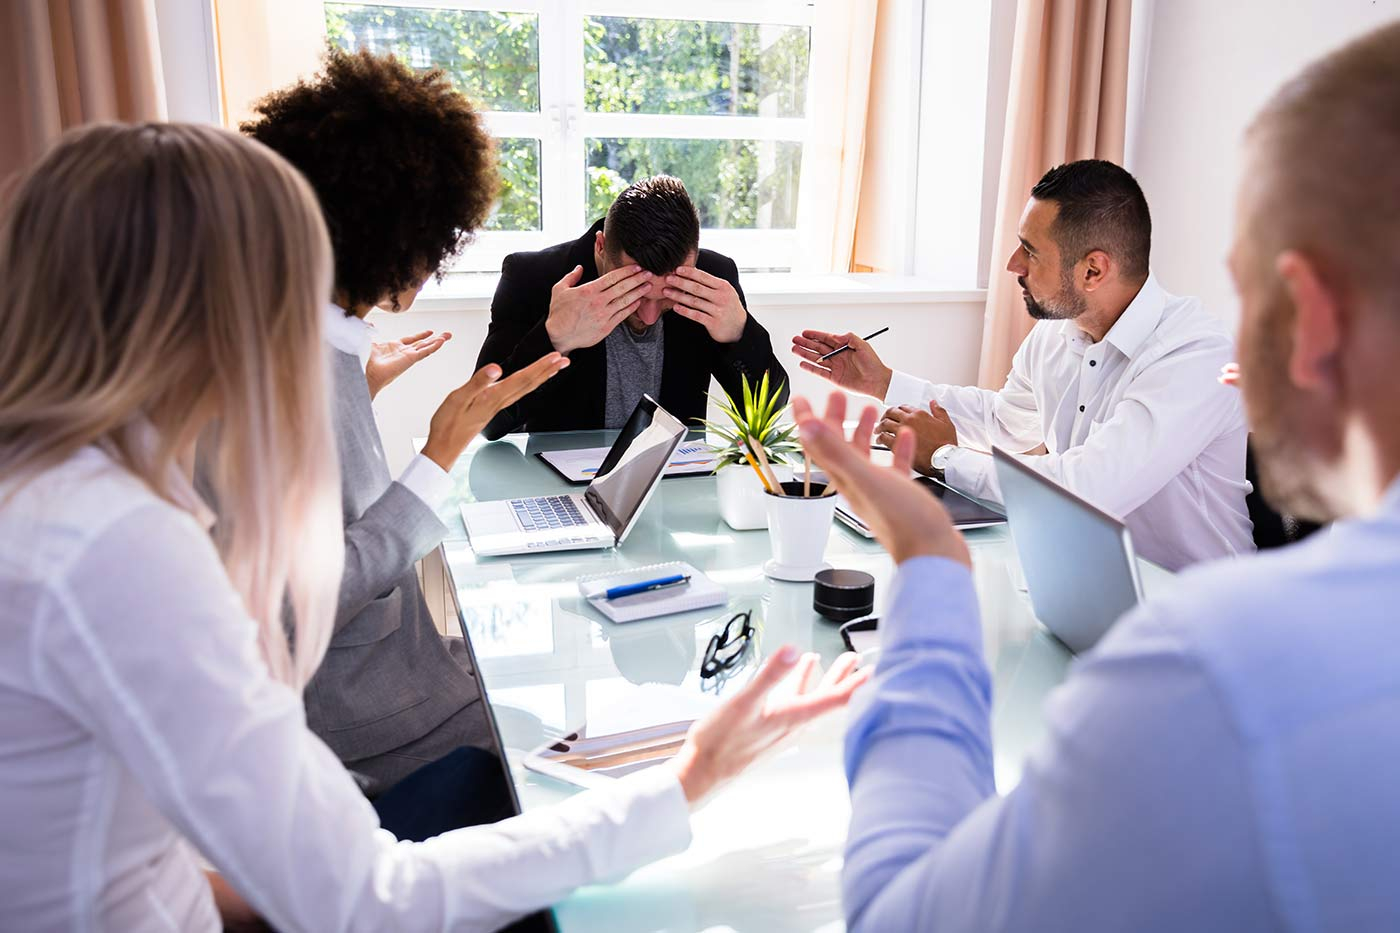 How to avoid or deflect tense conflict situations at work